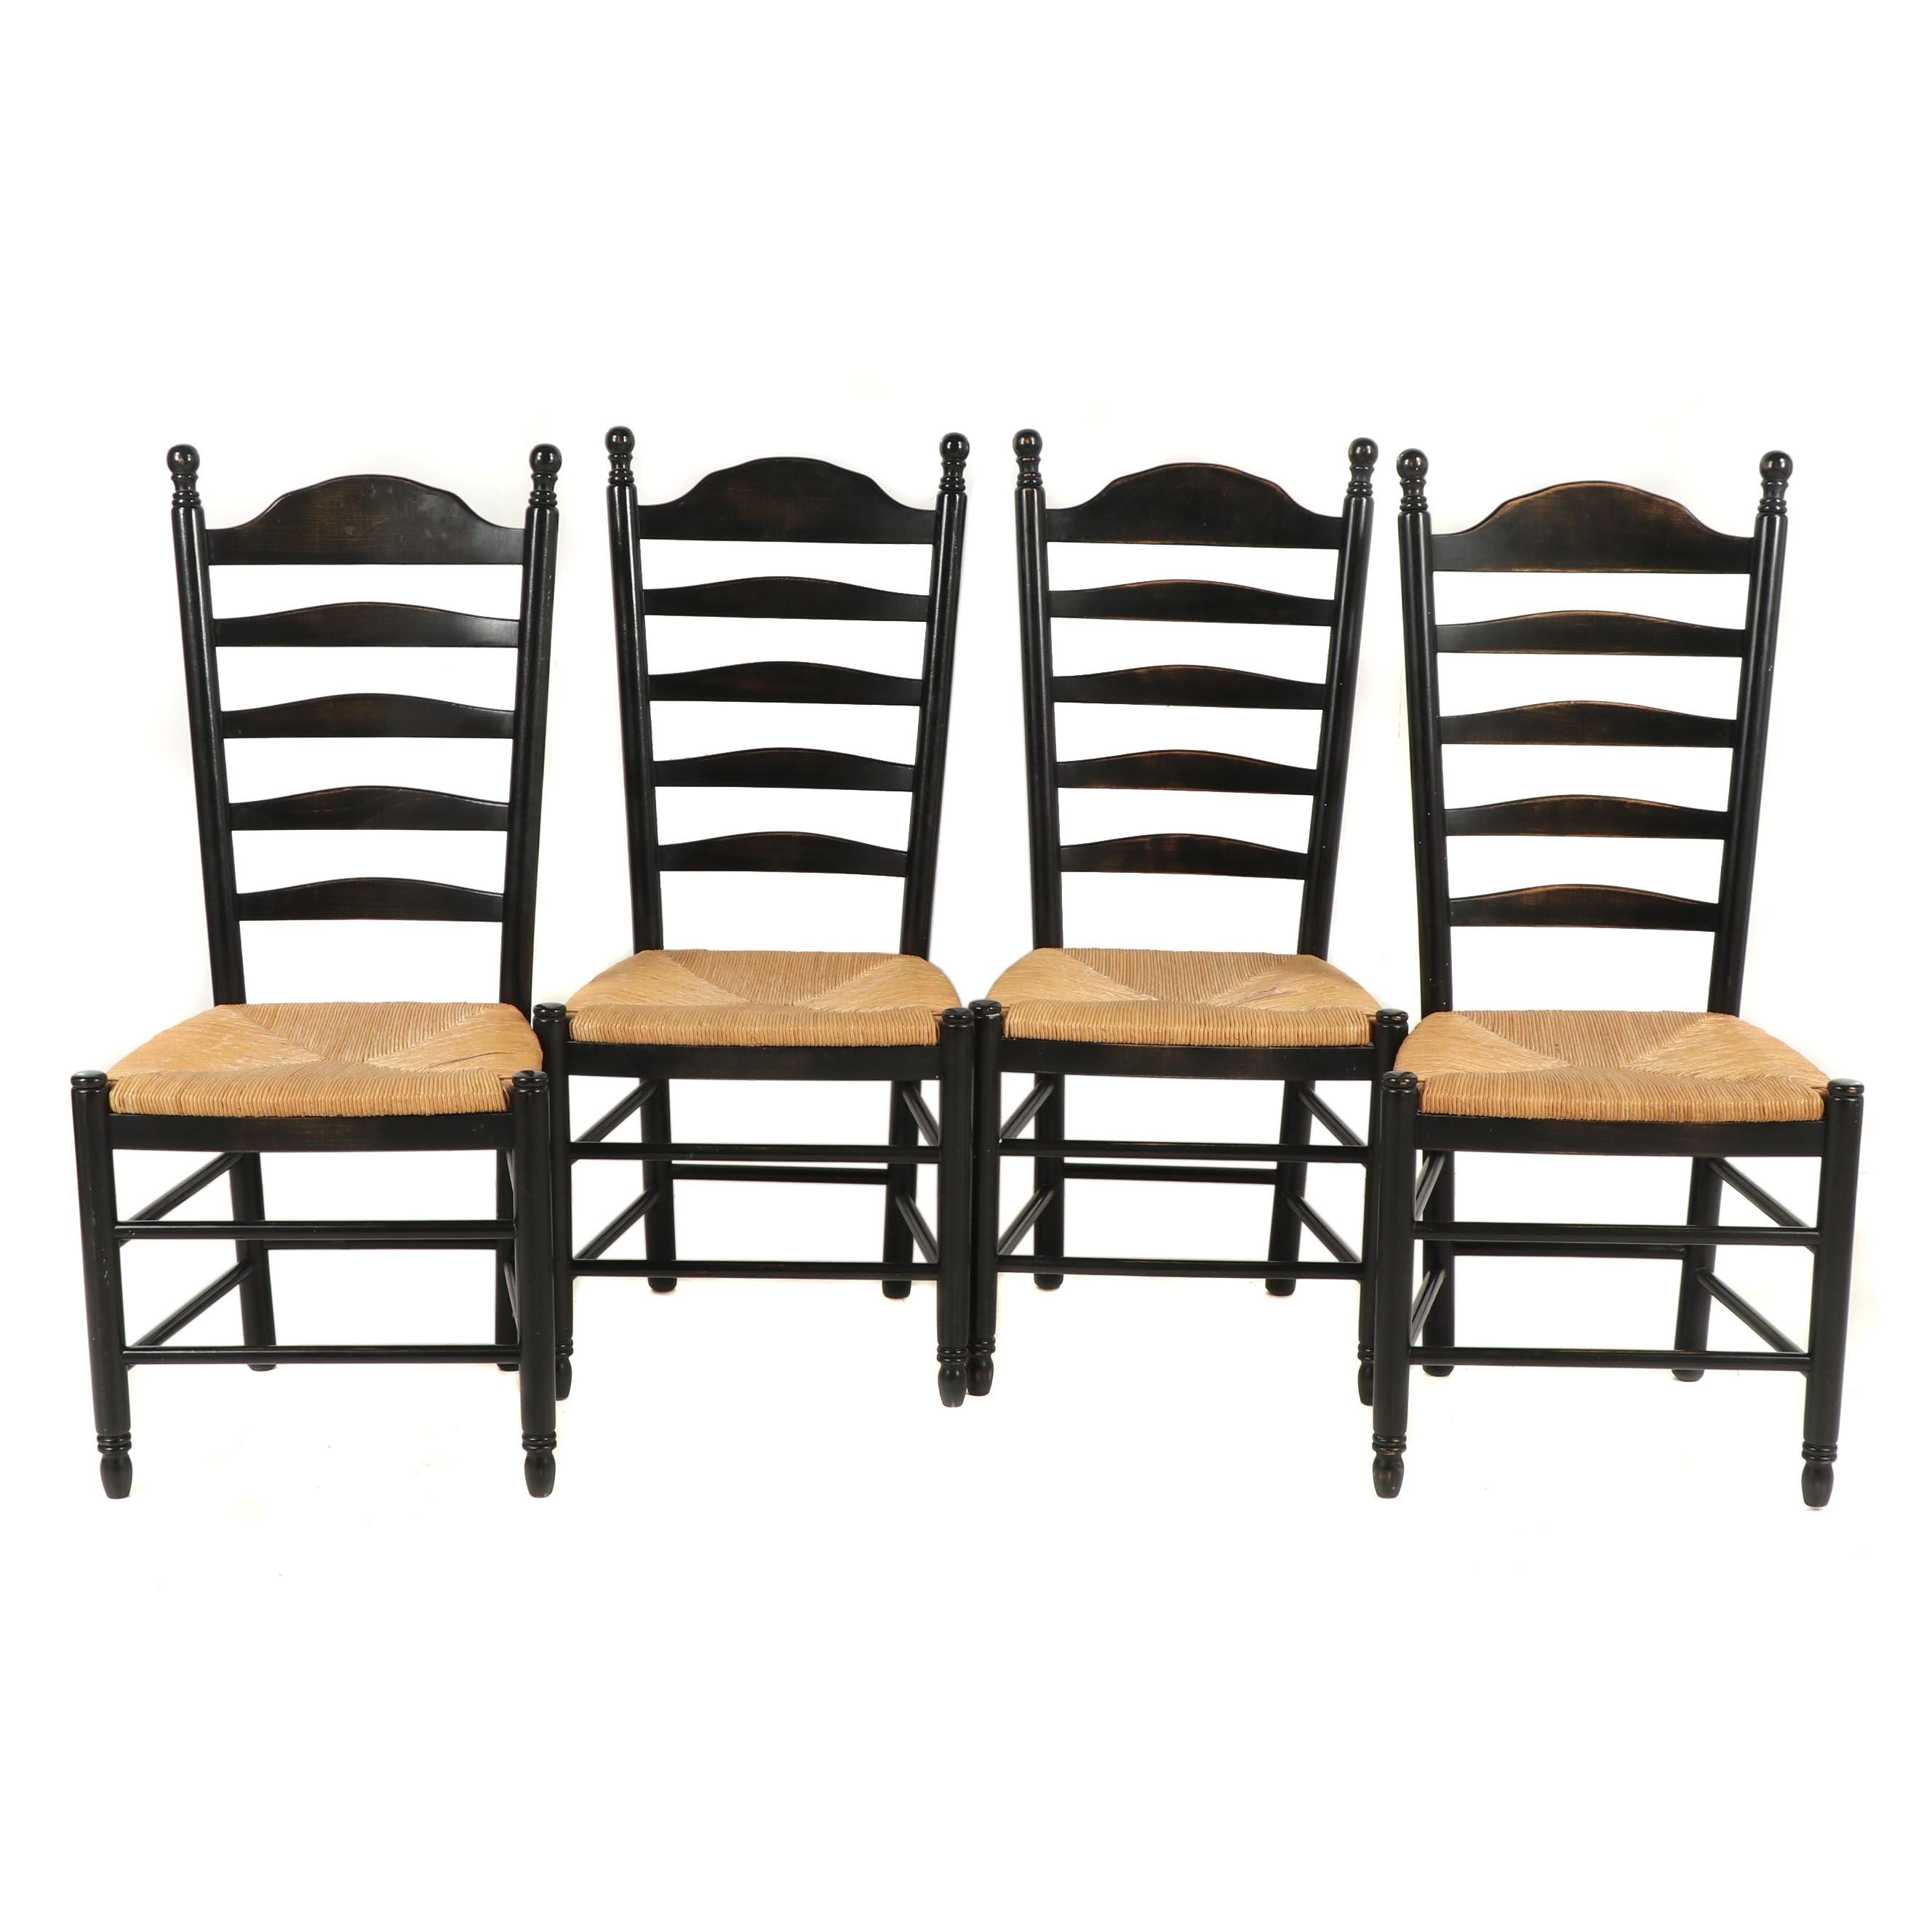 Four American Primitive Style Ebonized Wooden, Rush Seat Side Chairs